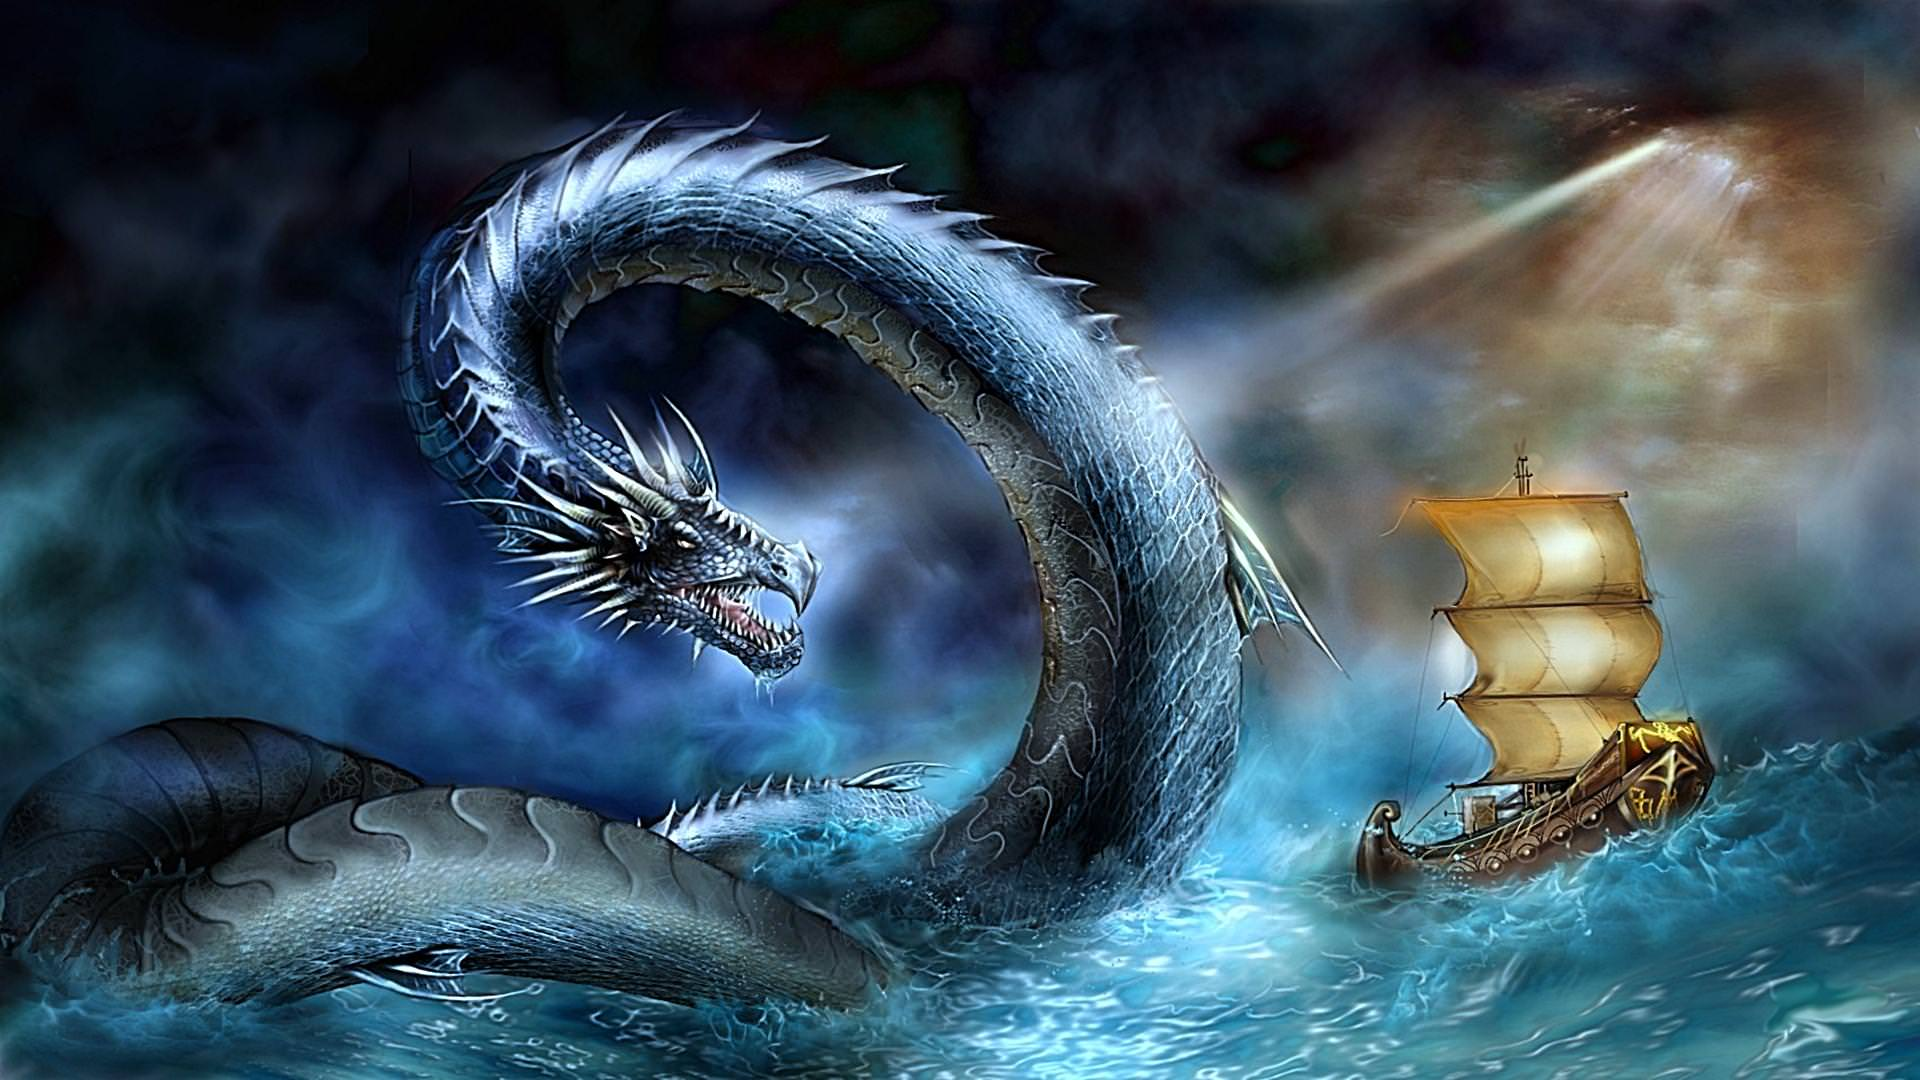 21 Dragon Wallpapers Backgrounds Images FreeCreatives 1920x1080